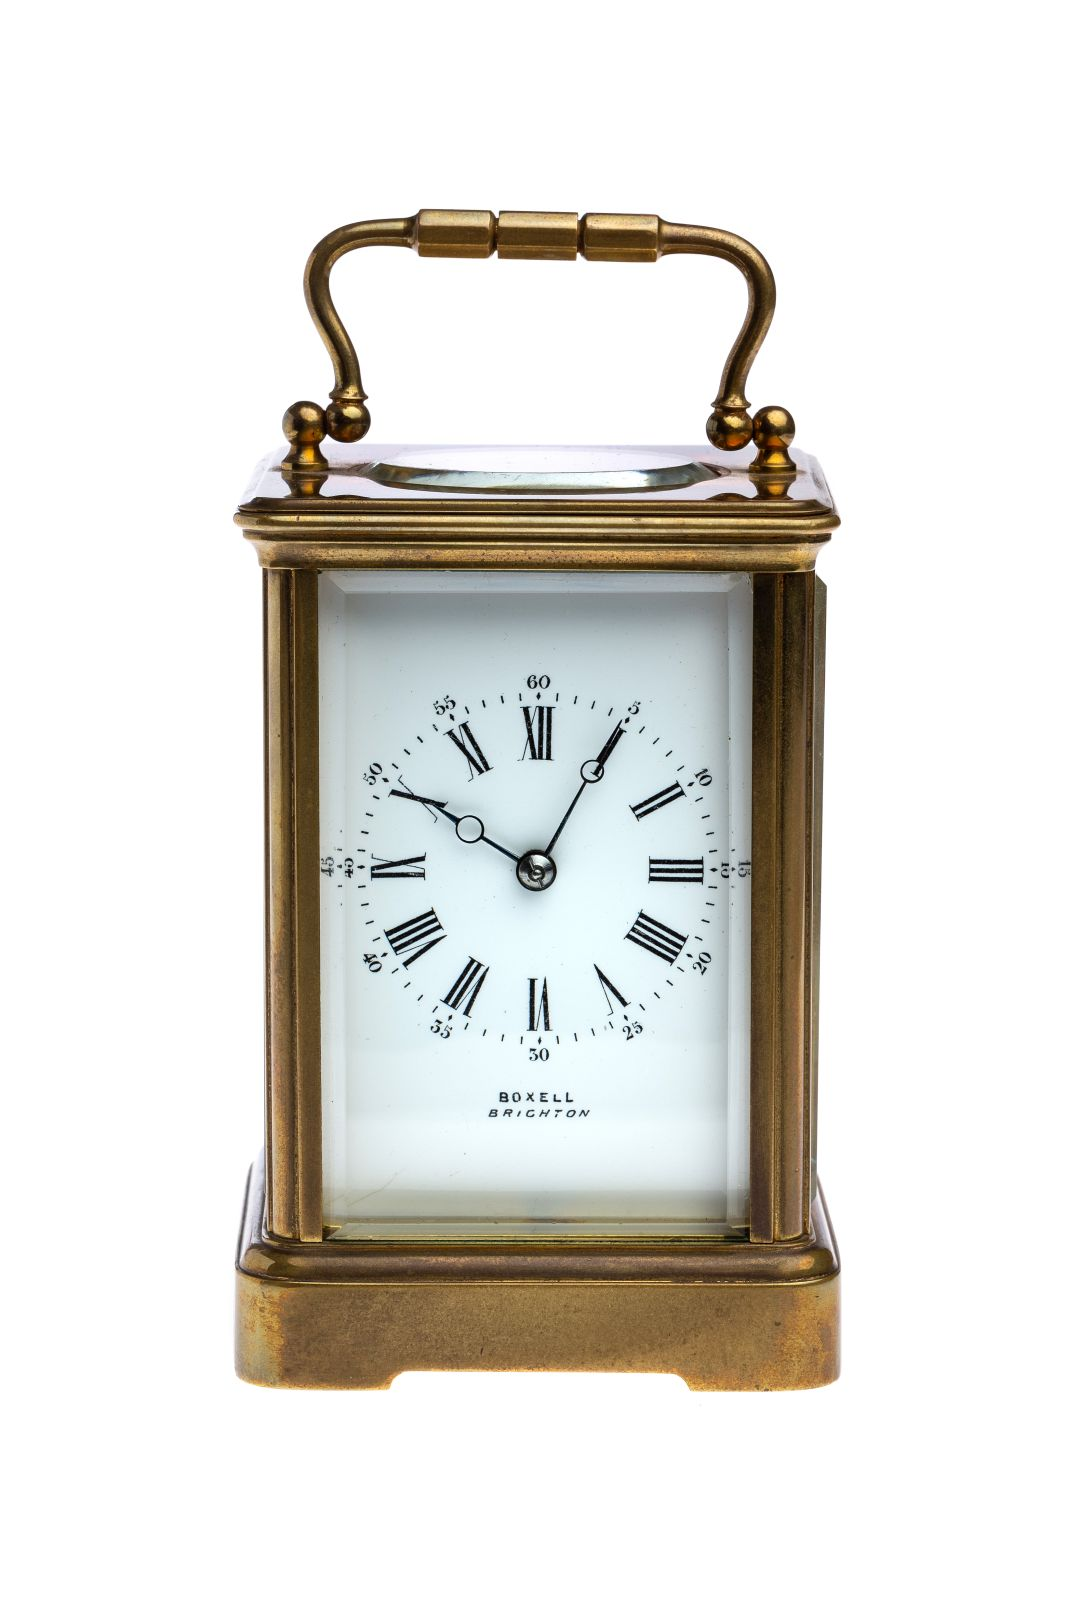 #18 English Travel Clock | Englische Reiseuhr Boxell Brighton Image